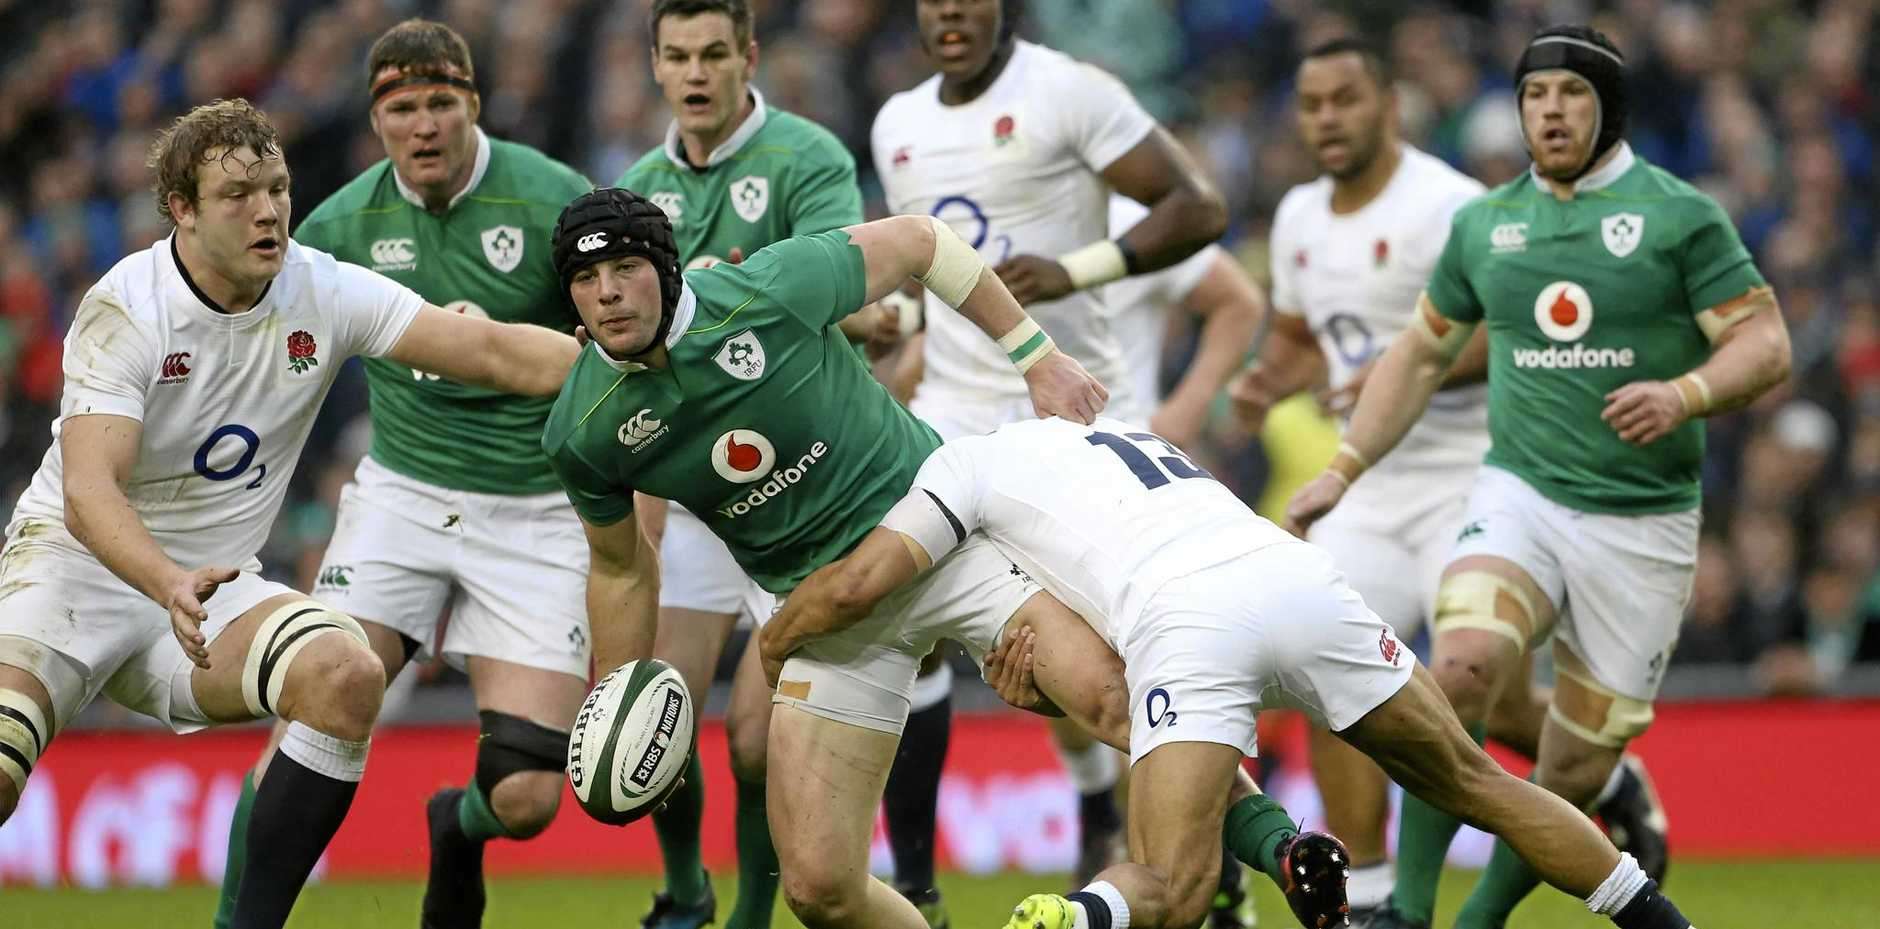 Ireland's Robbie Henshaw, hands off the ball in his country's 13-9 win over England.